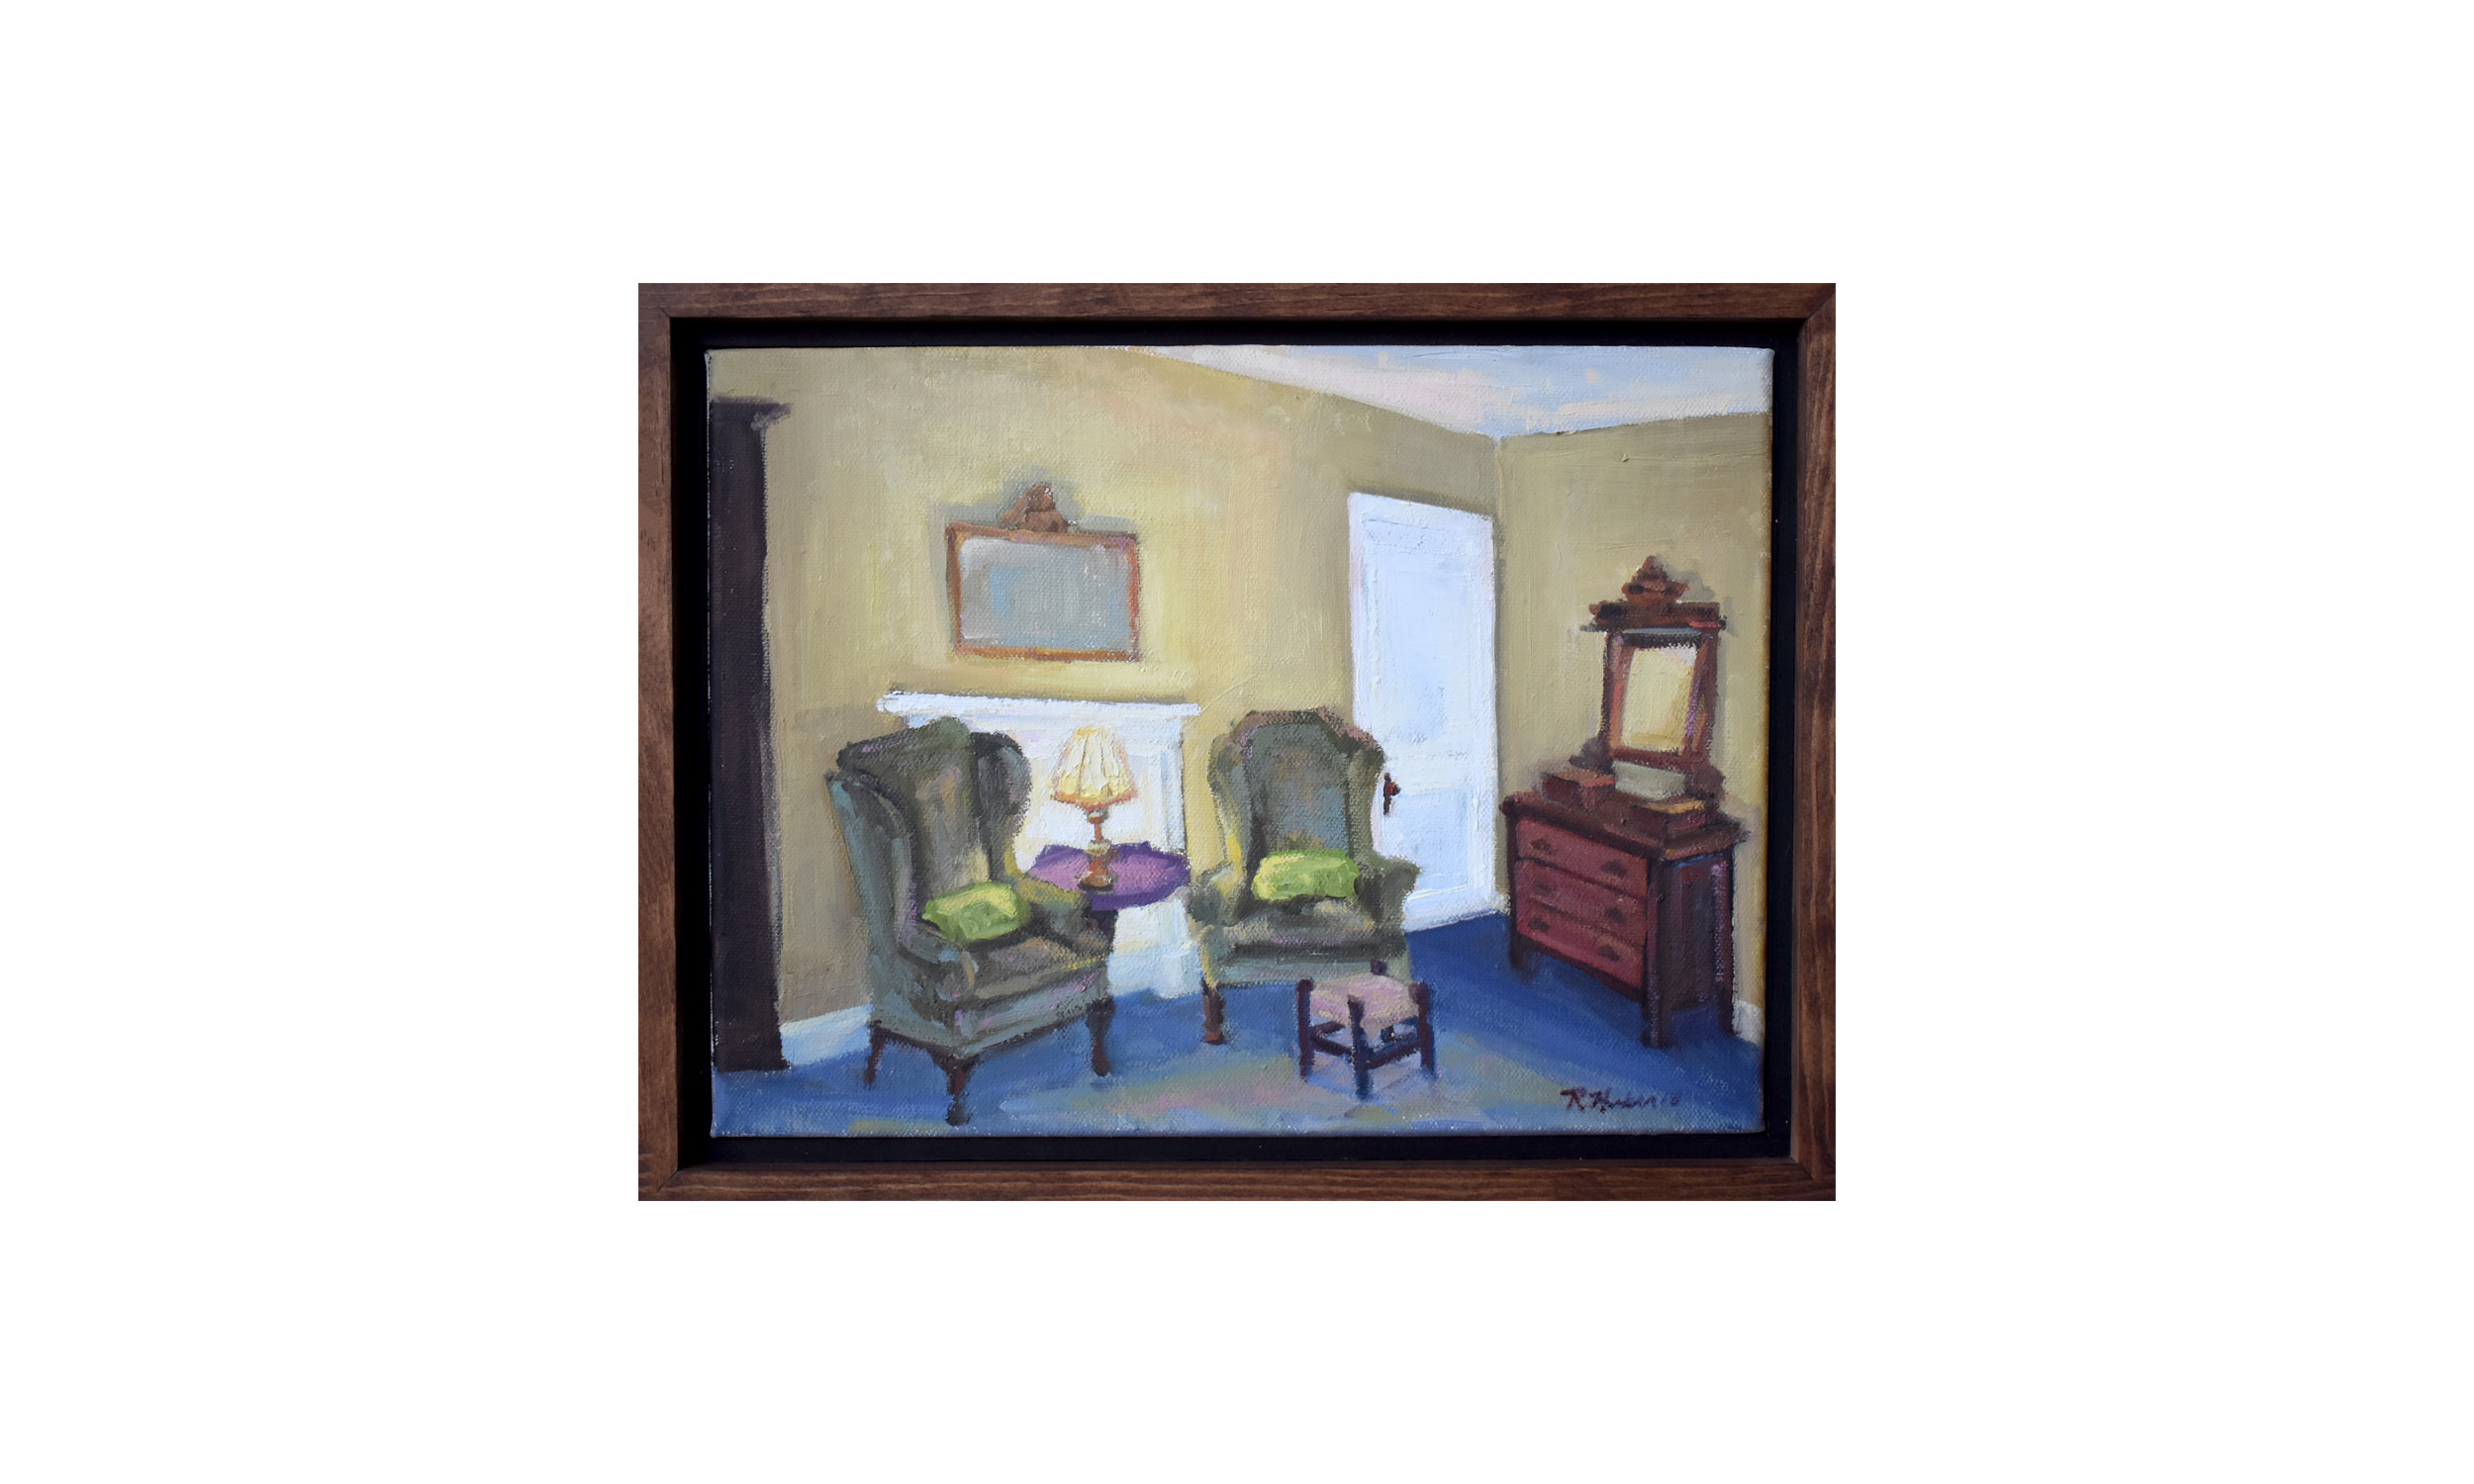 "Twin Room,  oil on canvas, 13.5"" x 10.5"", $400    Contact us for purchase"